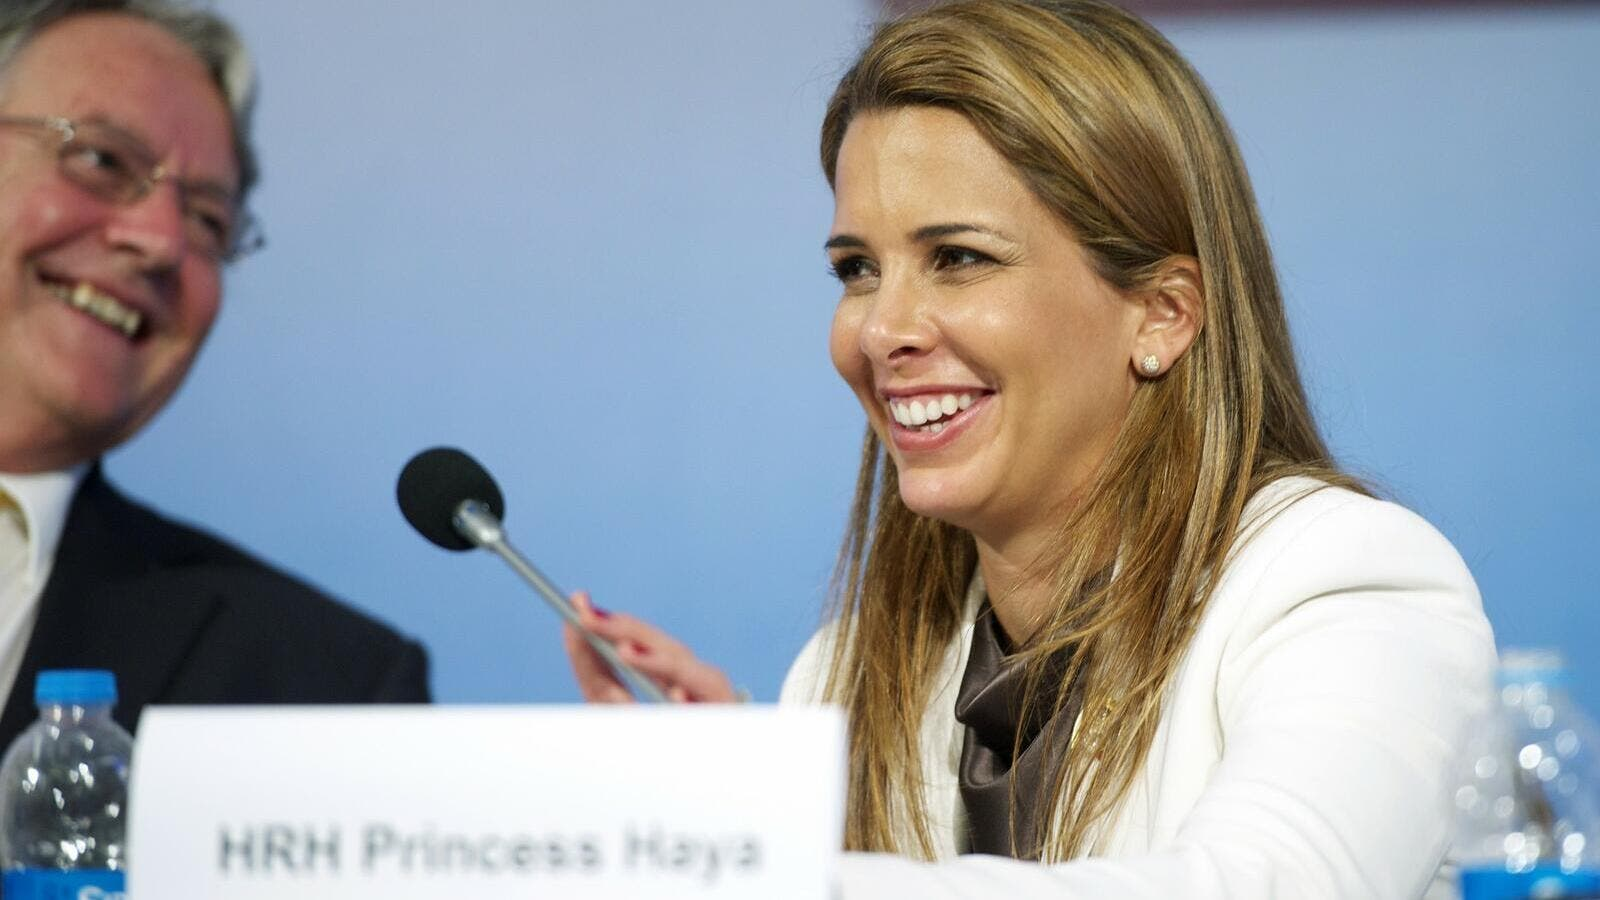 Princess Haya, sister of Jordan's King at the FEI General Assembly 2012 (princesshaya.net)